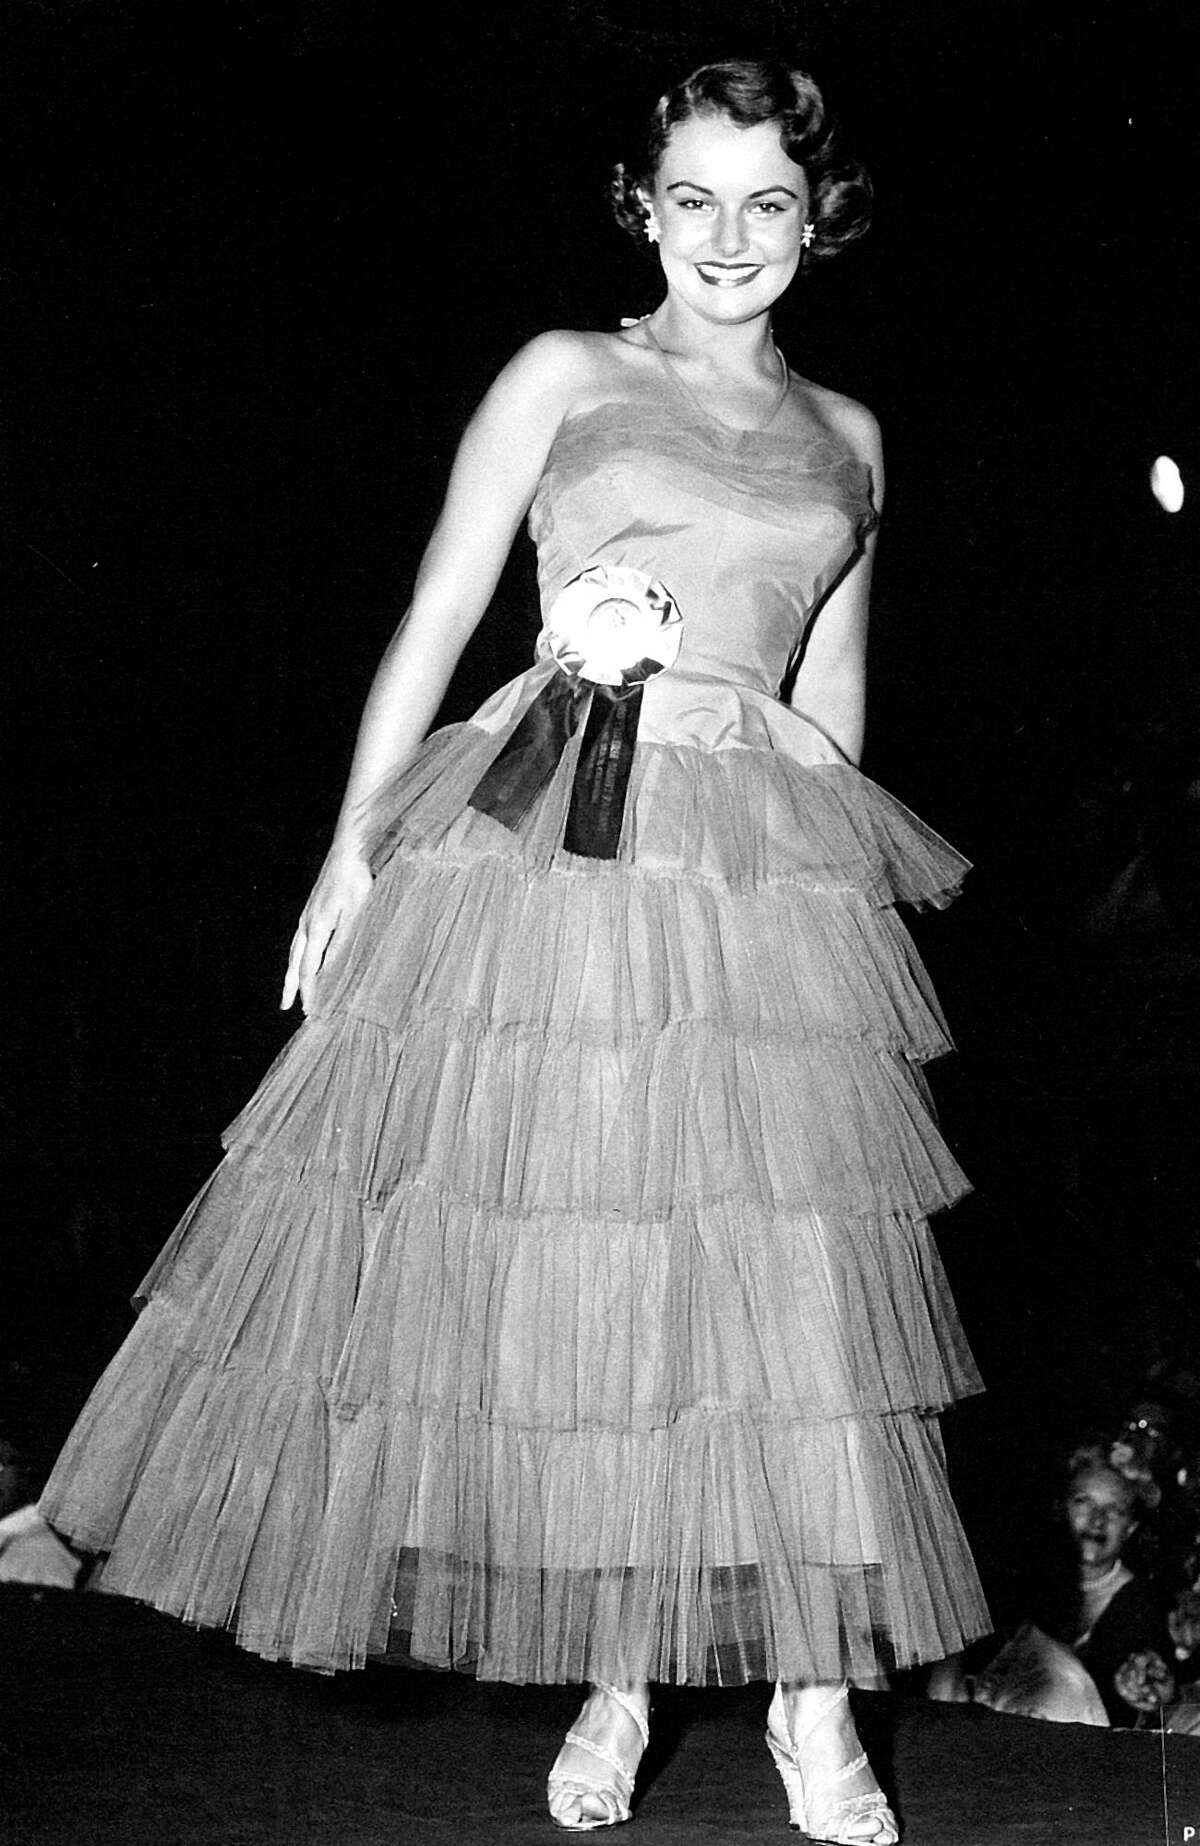 1953: Myrna Hansen of Chicago was just 17 when she was named Miss USA 1953. She'd be too young to be in today's pageant.